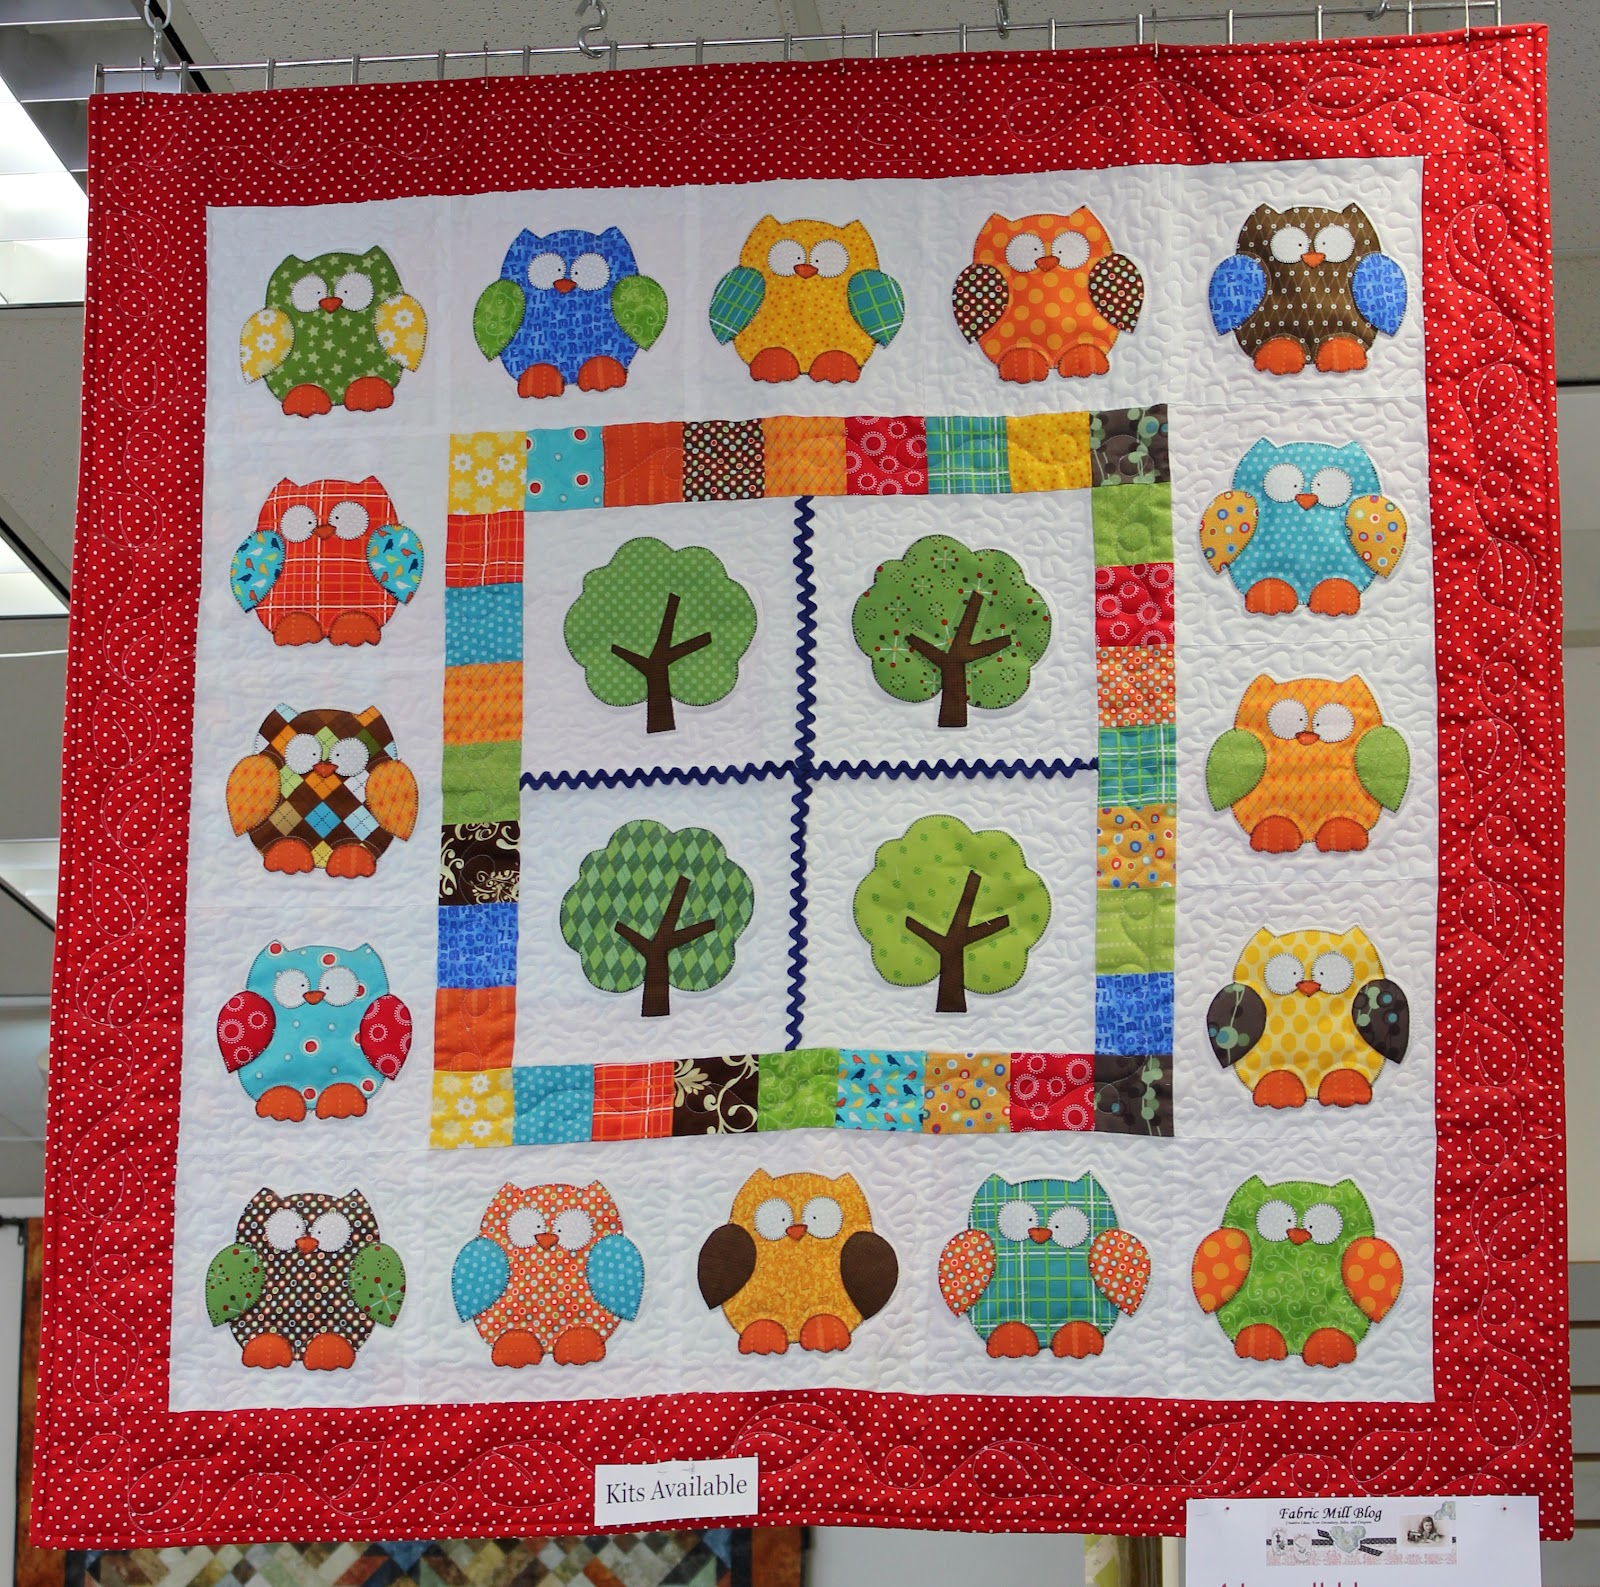 Fabric mill hooterville quilt kit - Quilt rits ...